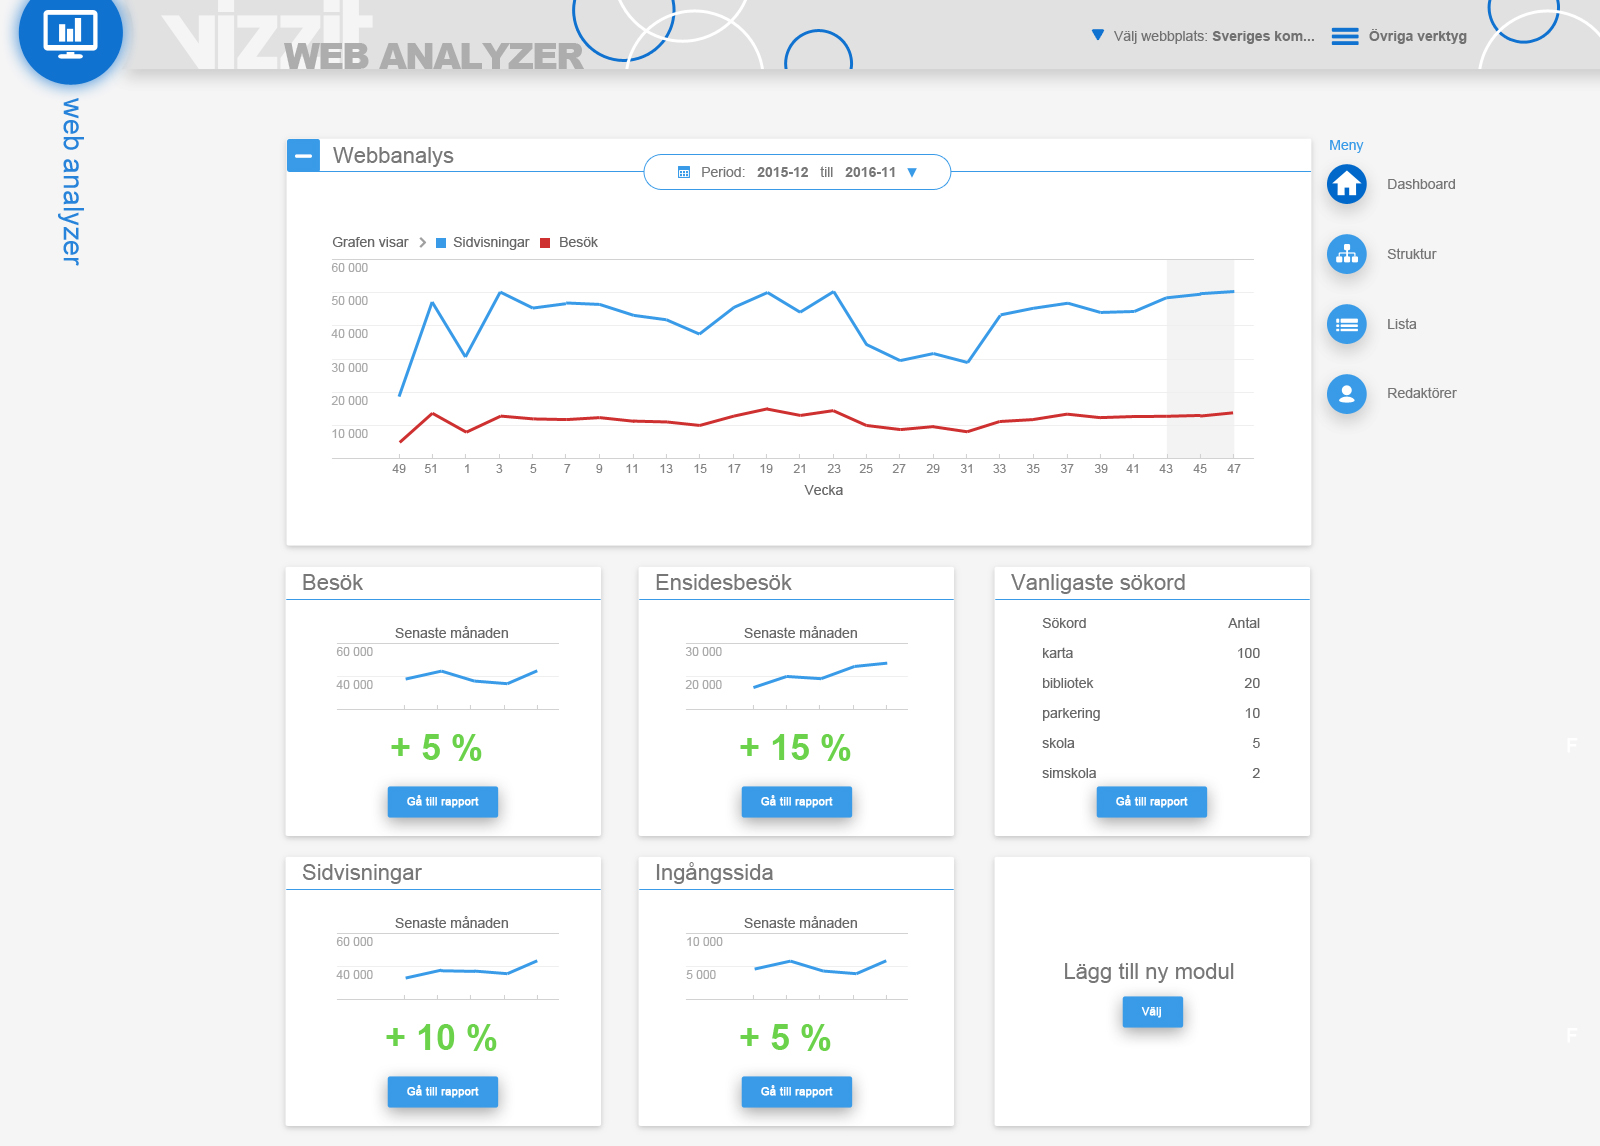 webanalyzer.dashboard